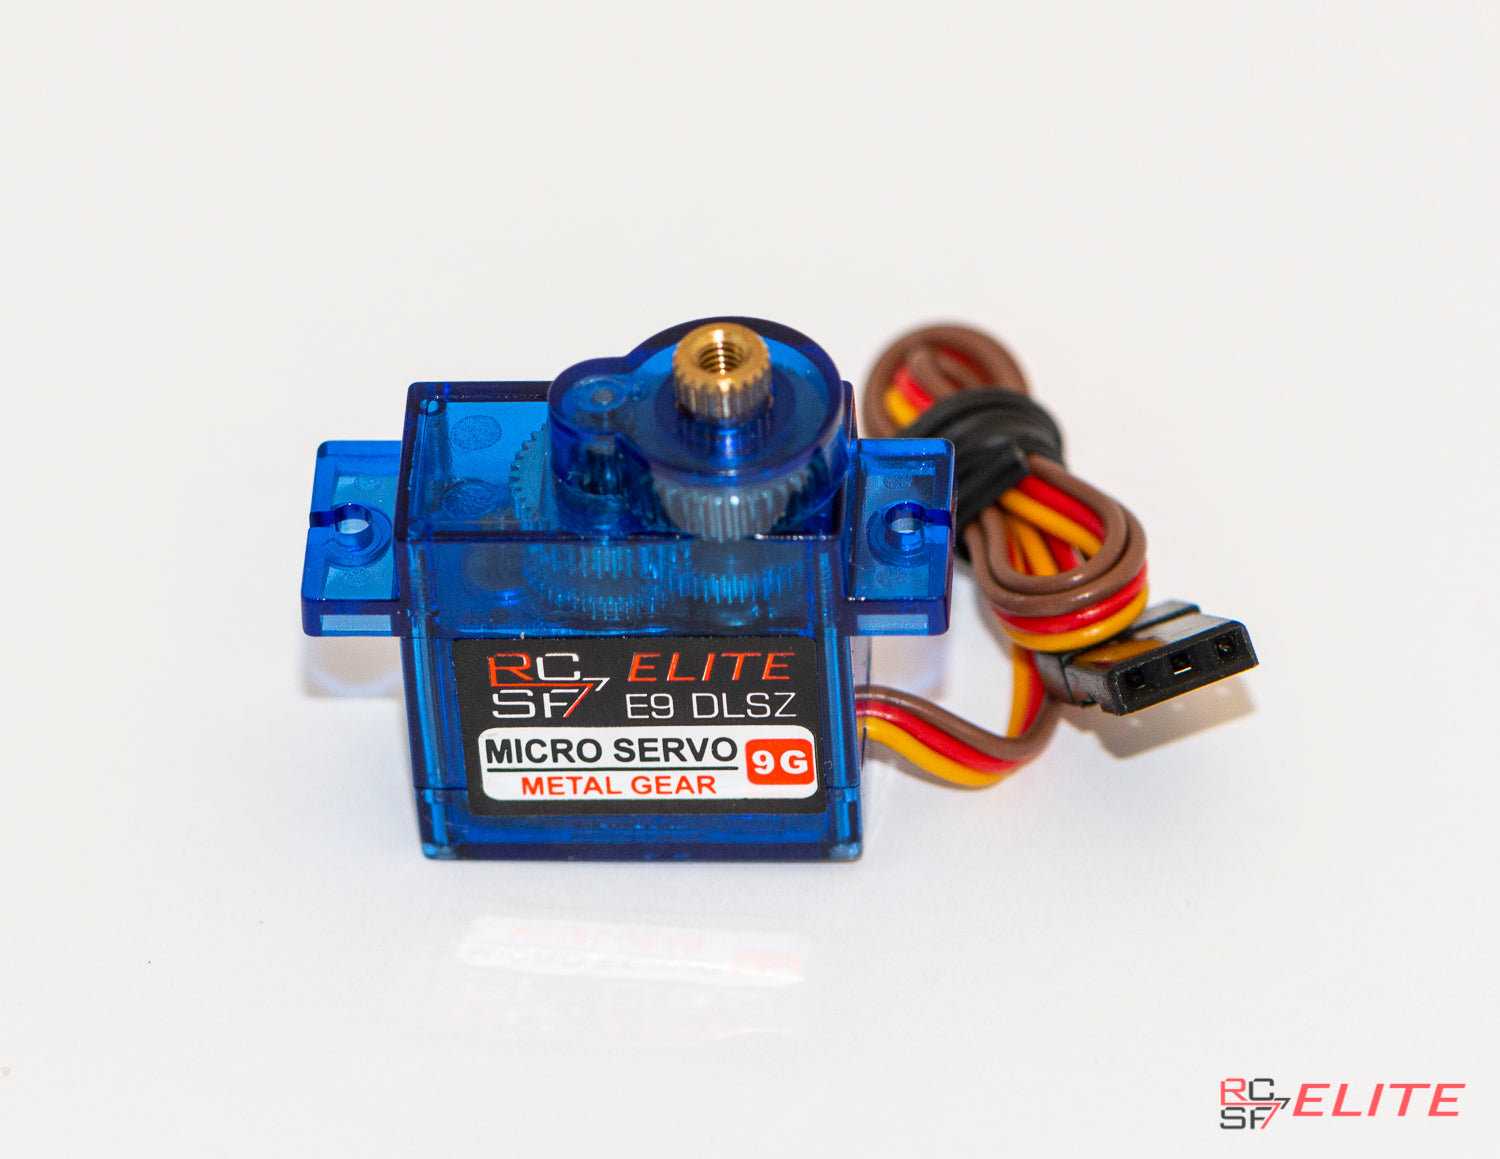 RCSF Elite E9DLSZ Coreless Nano Servo